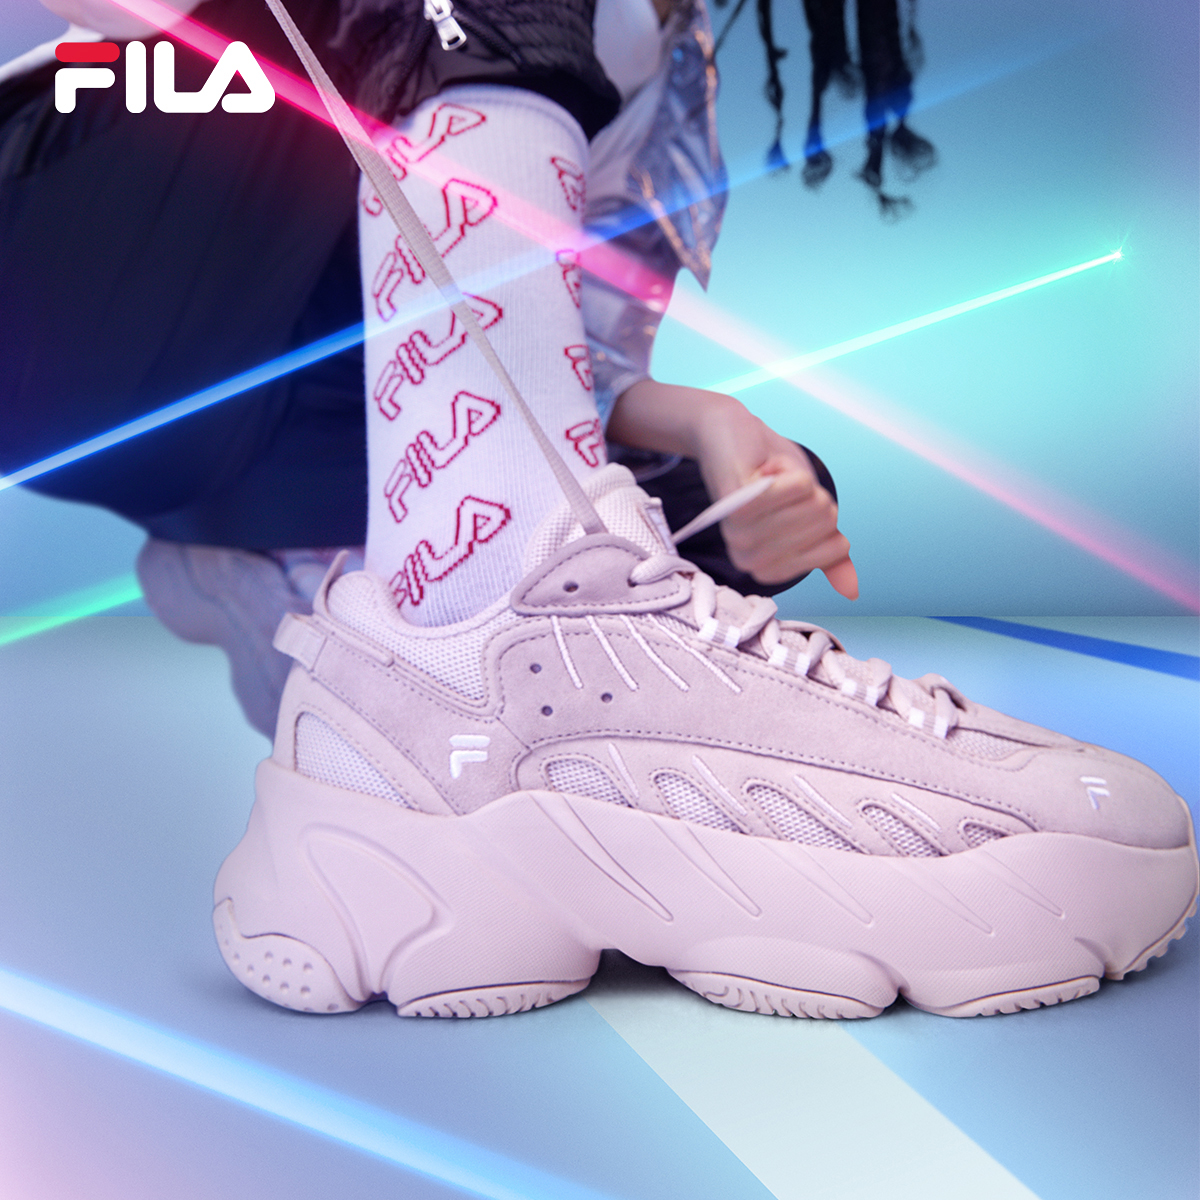 FILA FILA 2020 spring new ade running shoes dad shoes women's sports shoes leisure running shoes women's shoes